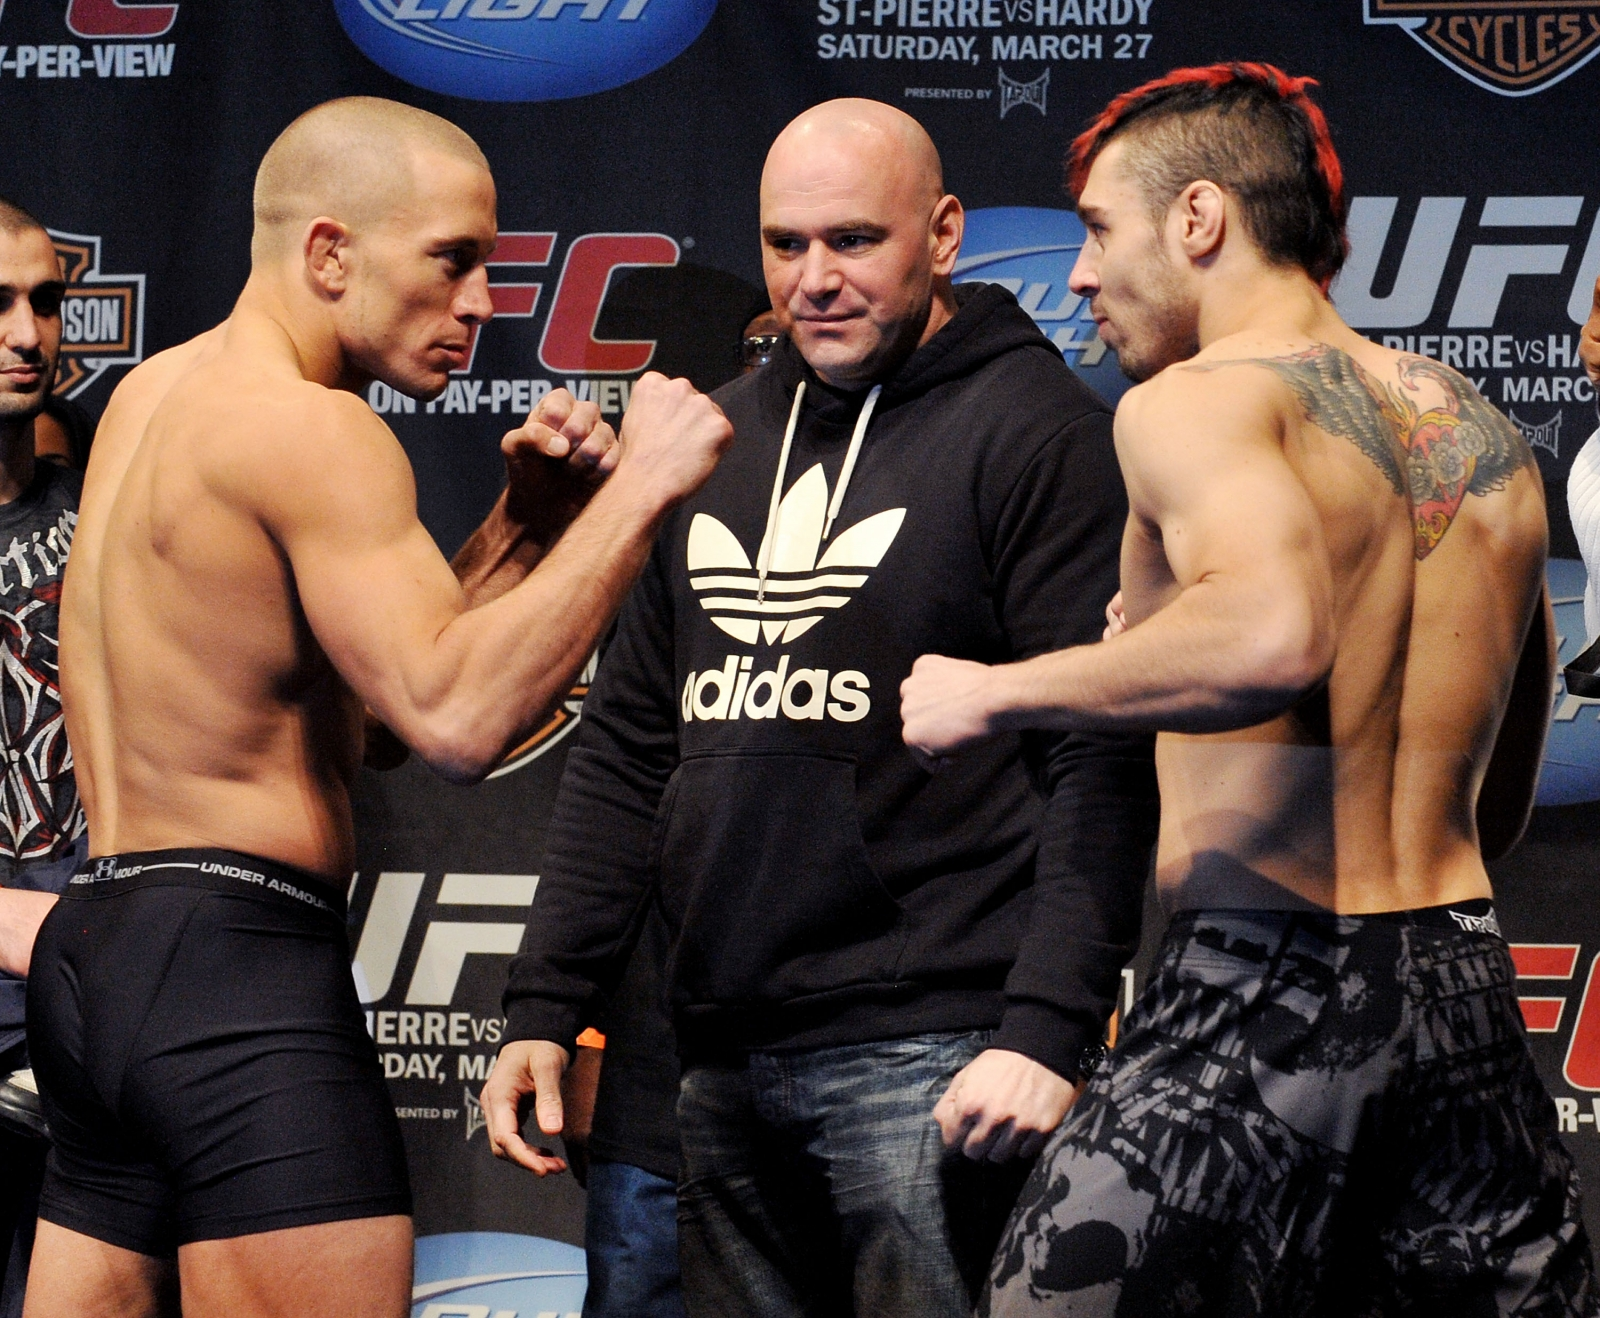 St-Pierre vs Hardy